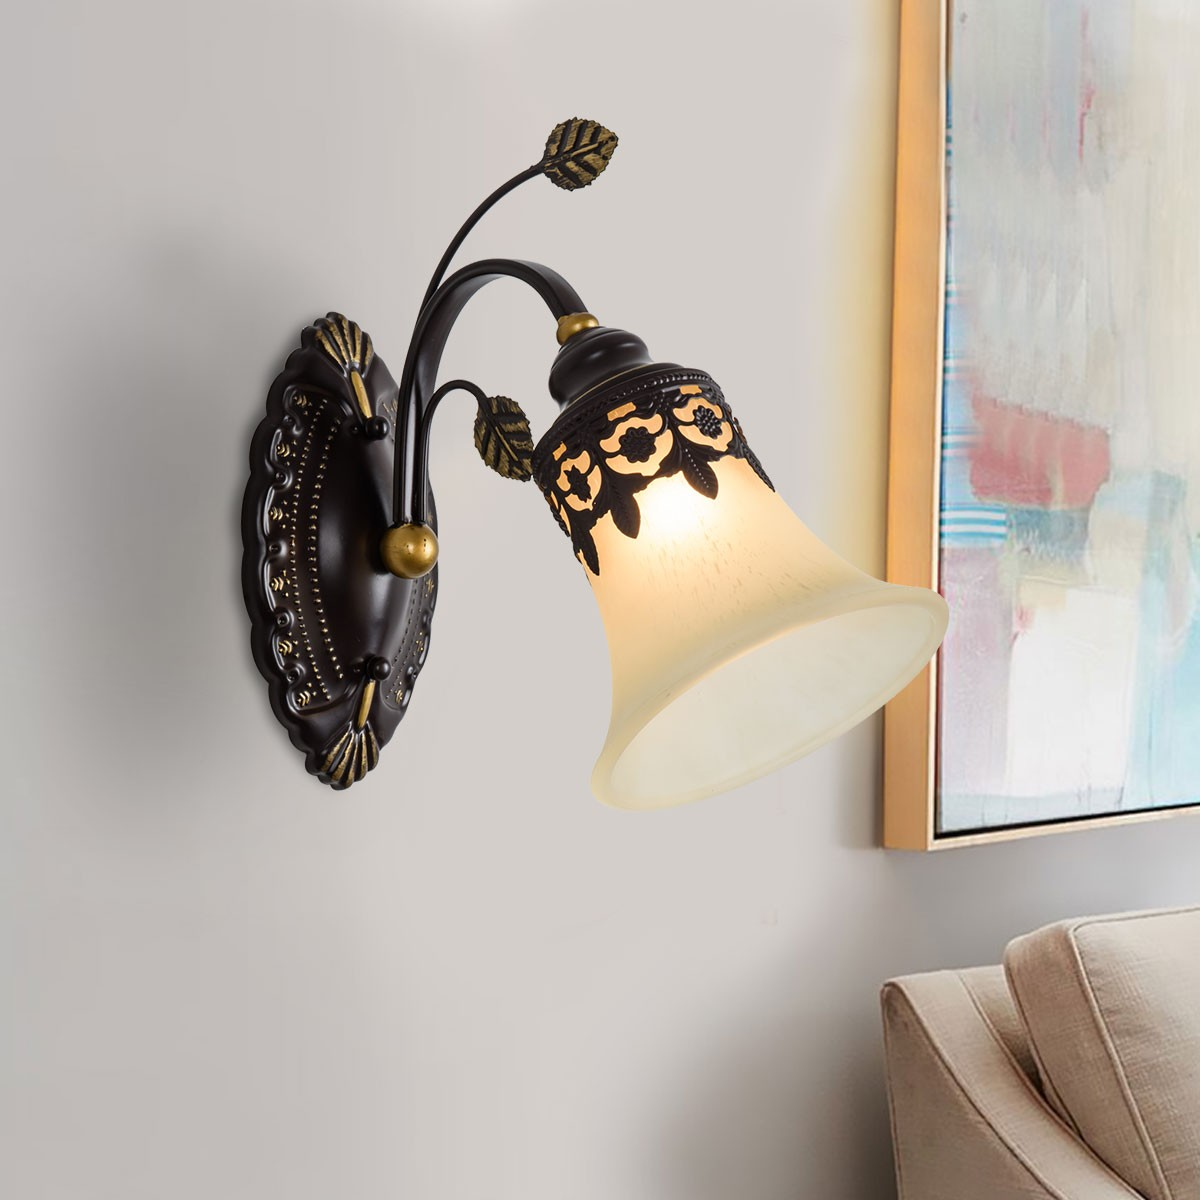 1 Light Black Wrought Iron Wall Sconce With Glass Shades (DK 1029